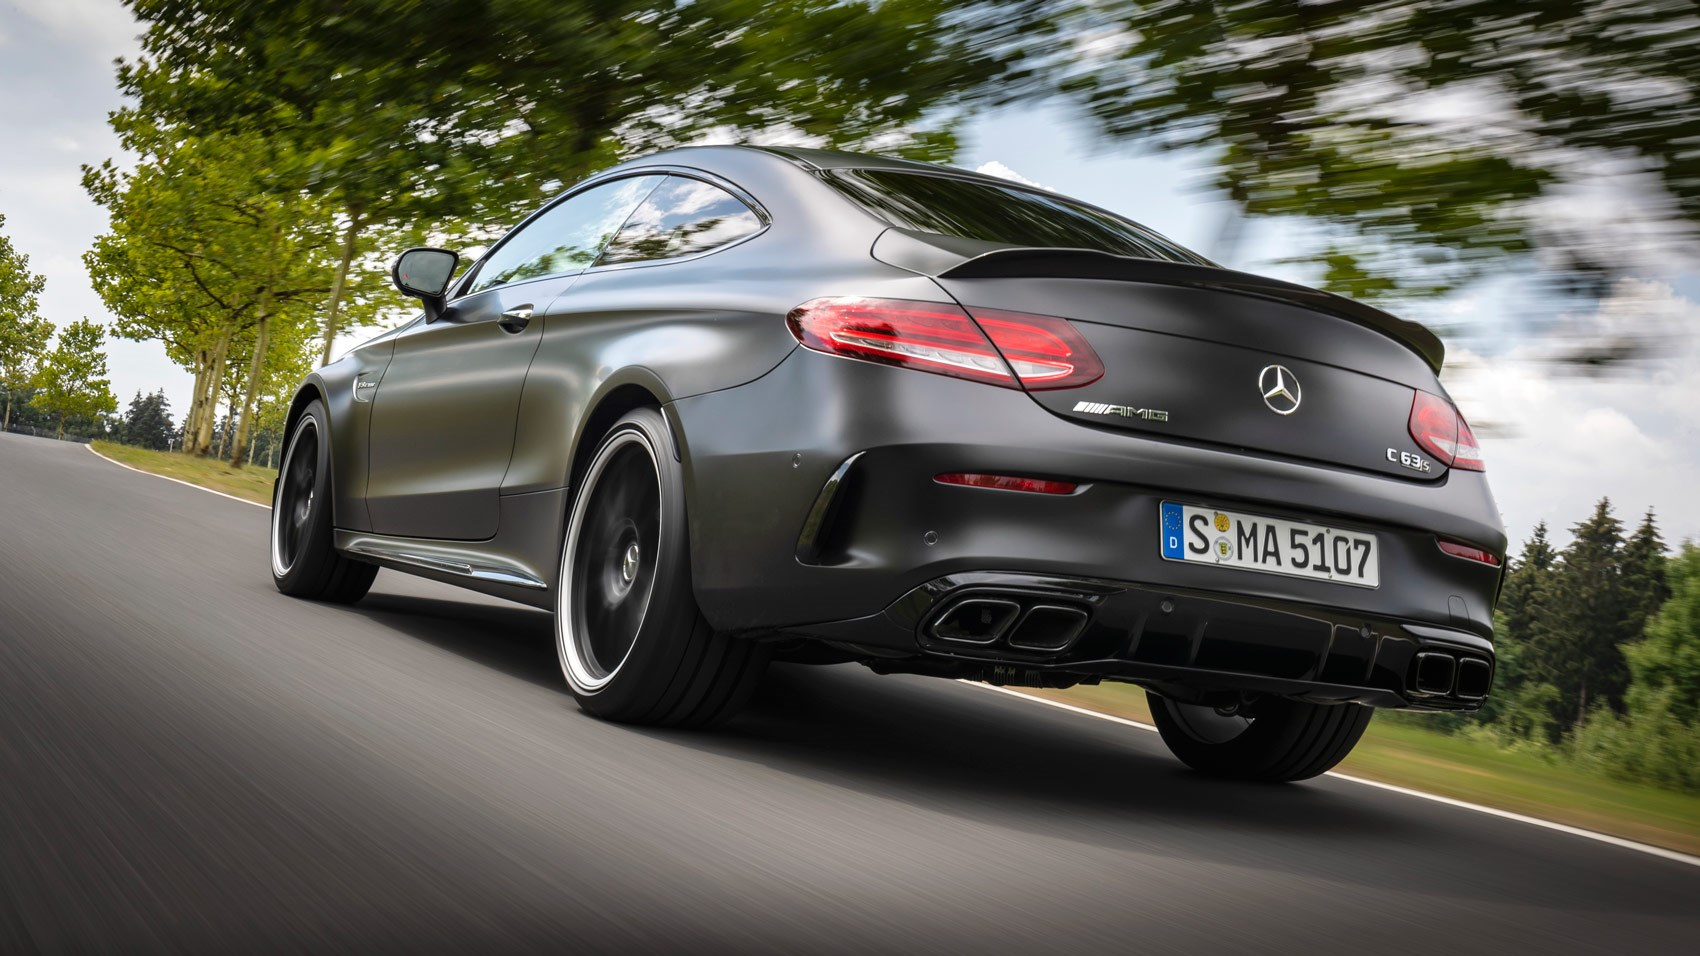 Mercedes-AMG C63 S Coupe (2018) Review: Endlessly